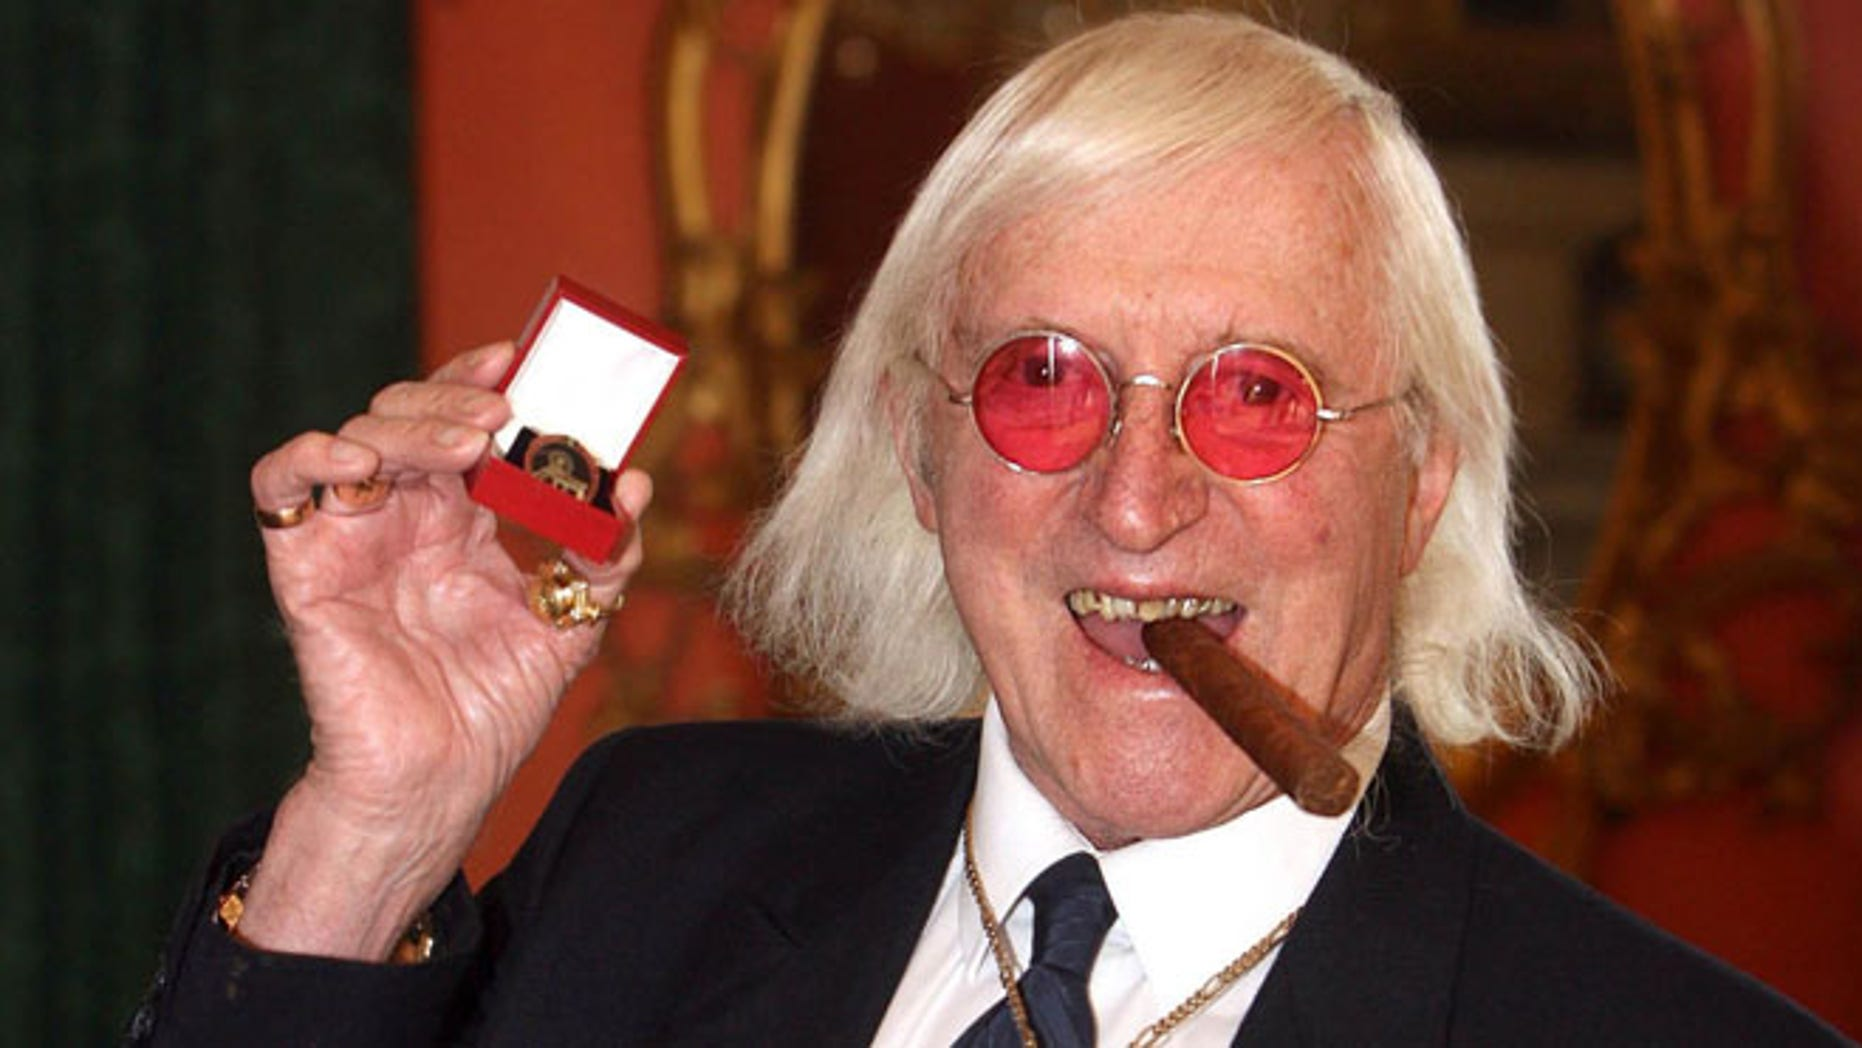 March 25, 2008. Jimmy Savile showing a medal in London.